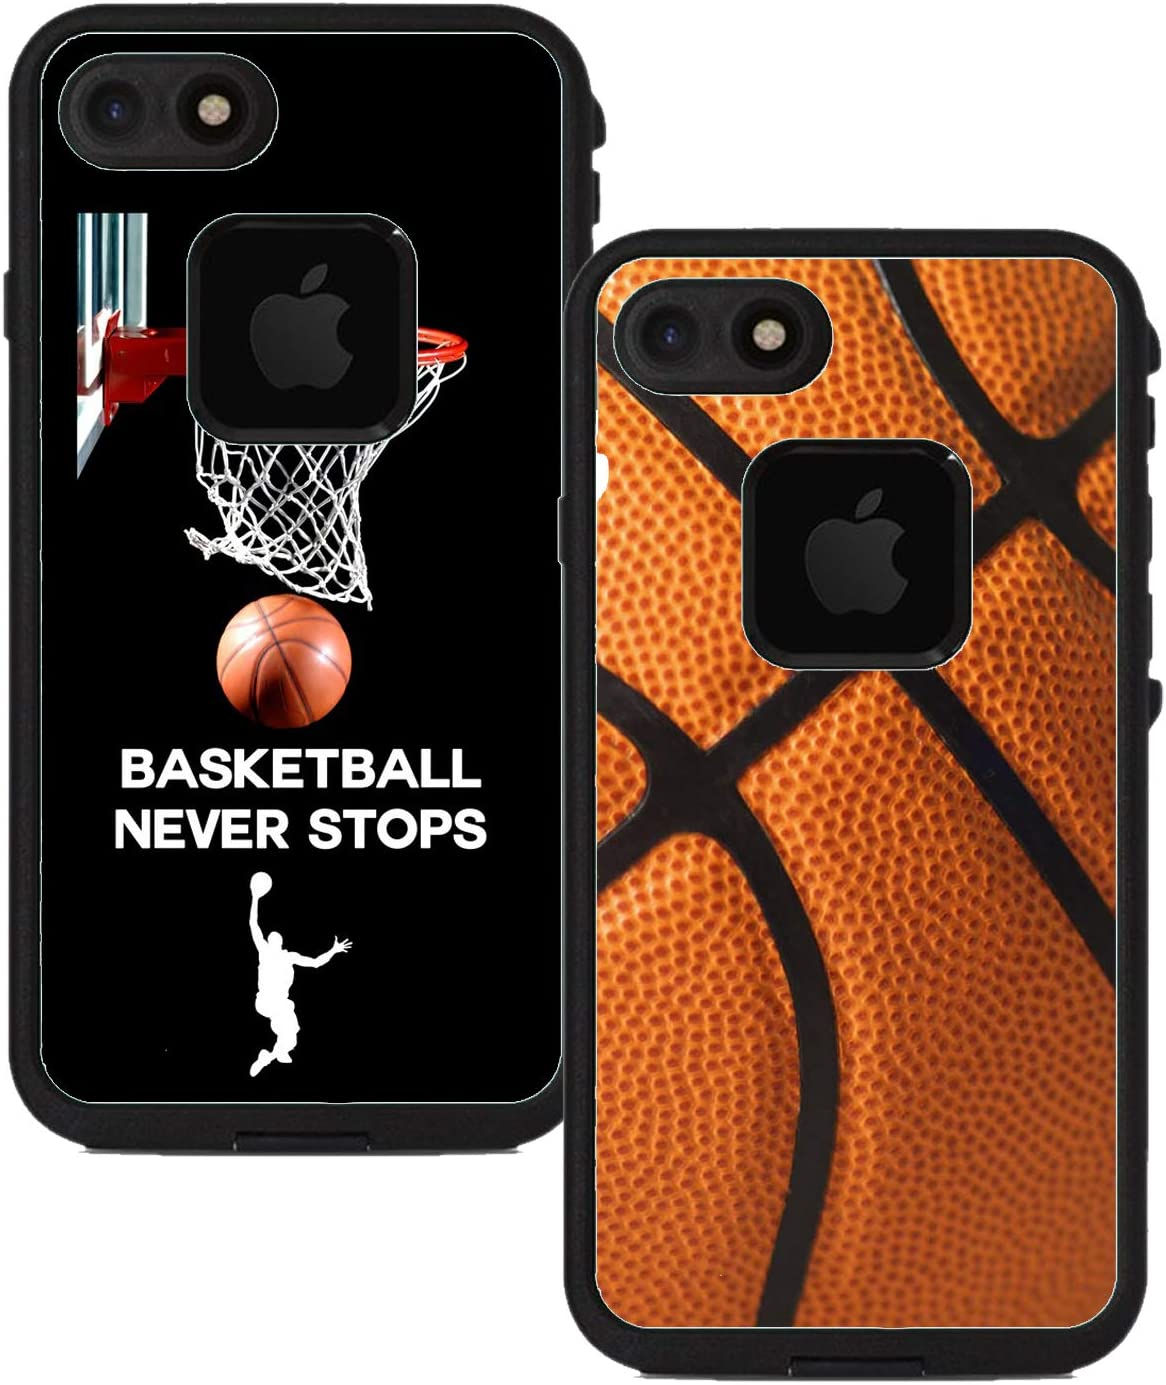 Teleskins Protective Designer Vinyl Skin Decals Compatible with Lifeproof Fre iPhone 7 / iPhone 8 / SE 2020 Case - Basketball and Basketball Never Stops [Pack of 2 Skins] - Only Skins and Not Case